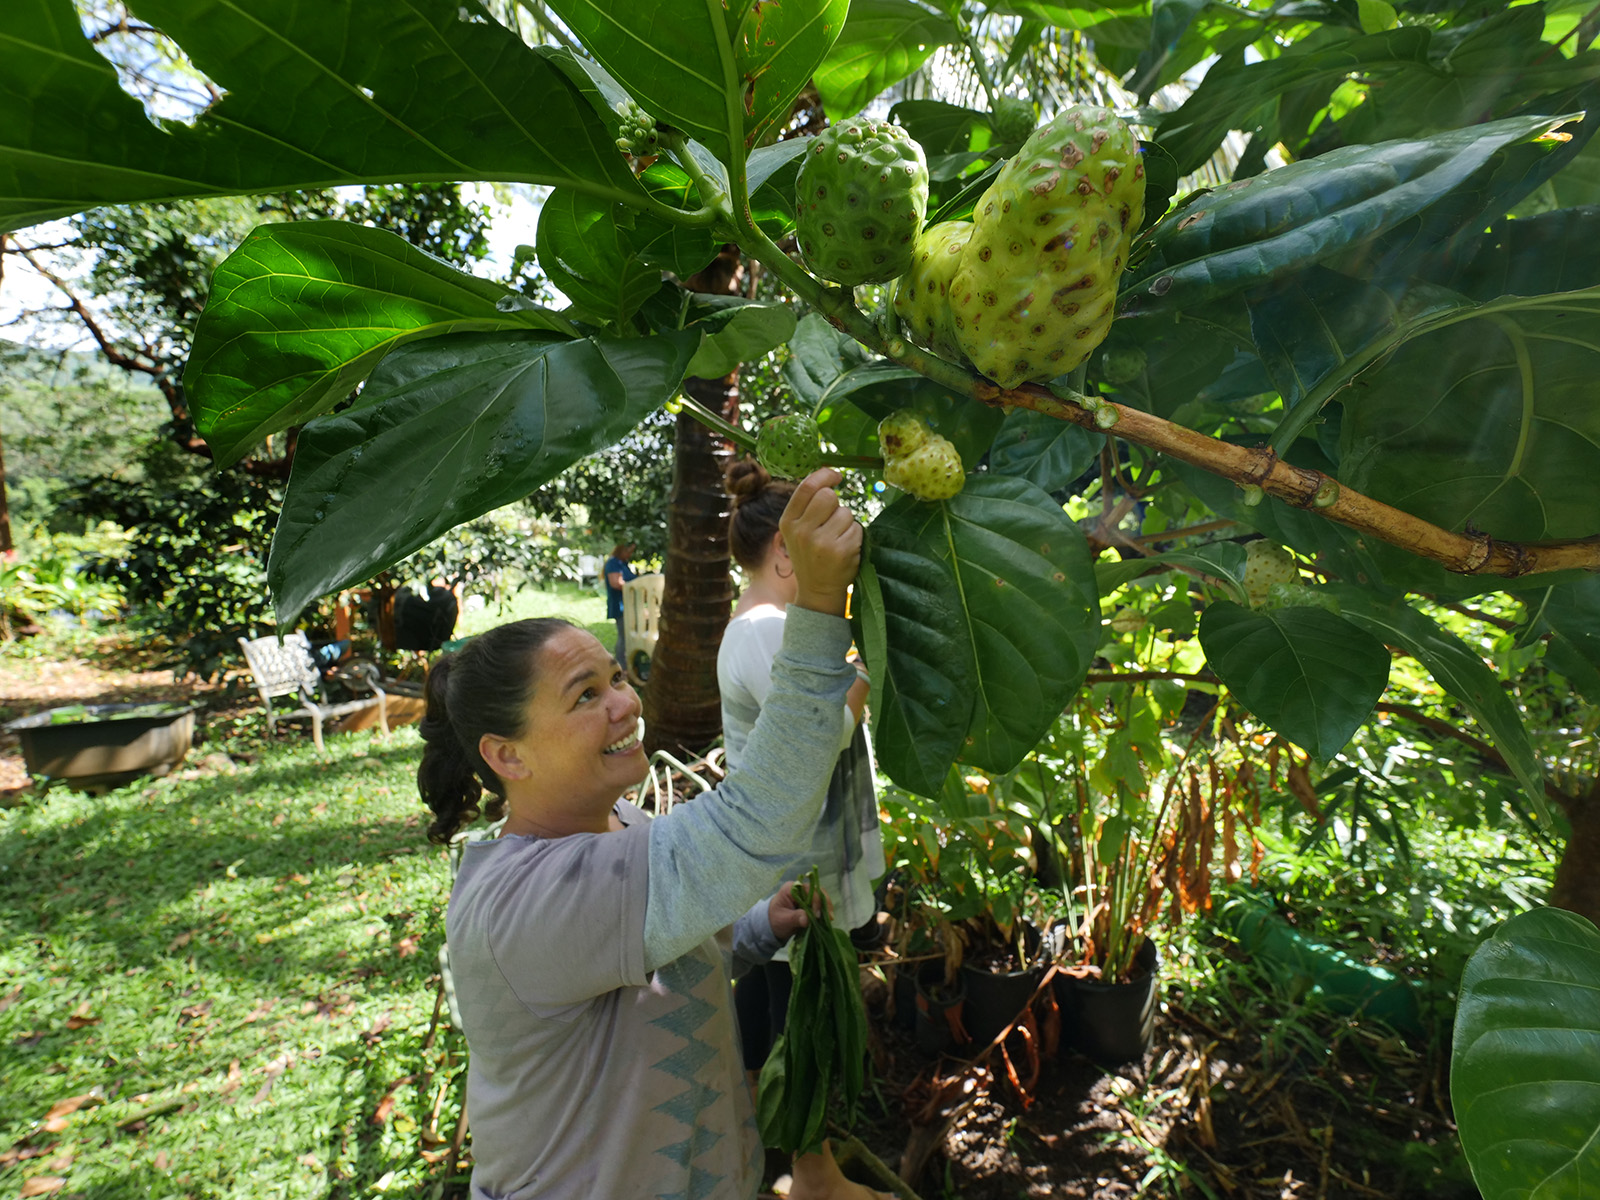 <p>Darla Simeone picks noni leaves, a natural anti-inflammatory, from the Pacifica section of the Ho'oulu Aina garden Feb 7. This section is reserved for growing medicinal plants from regions of Polynesia.</p>